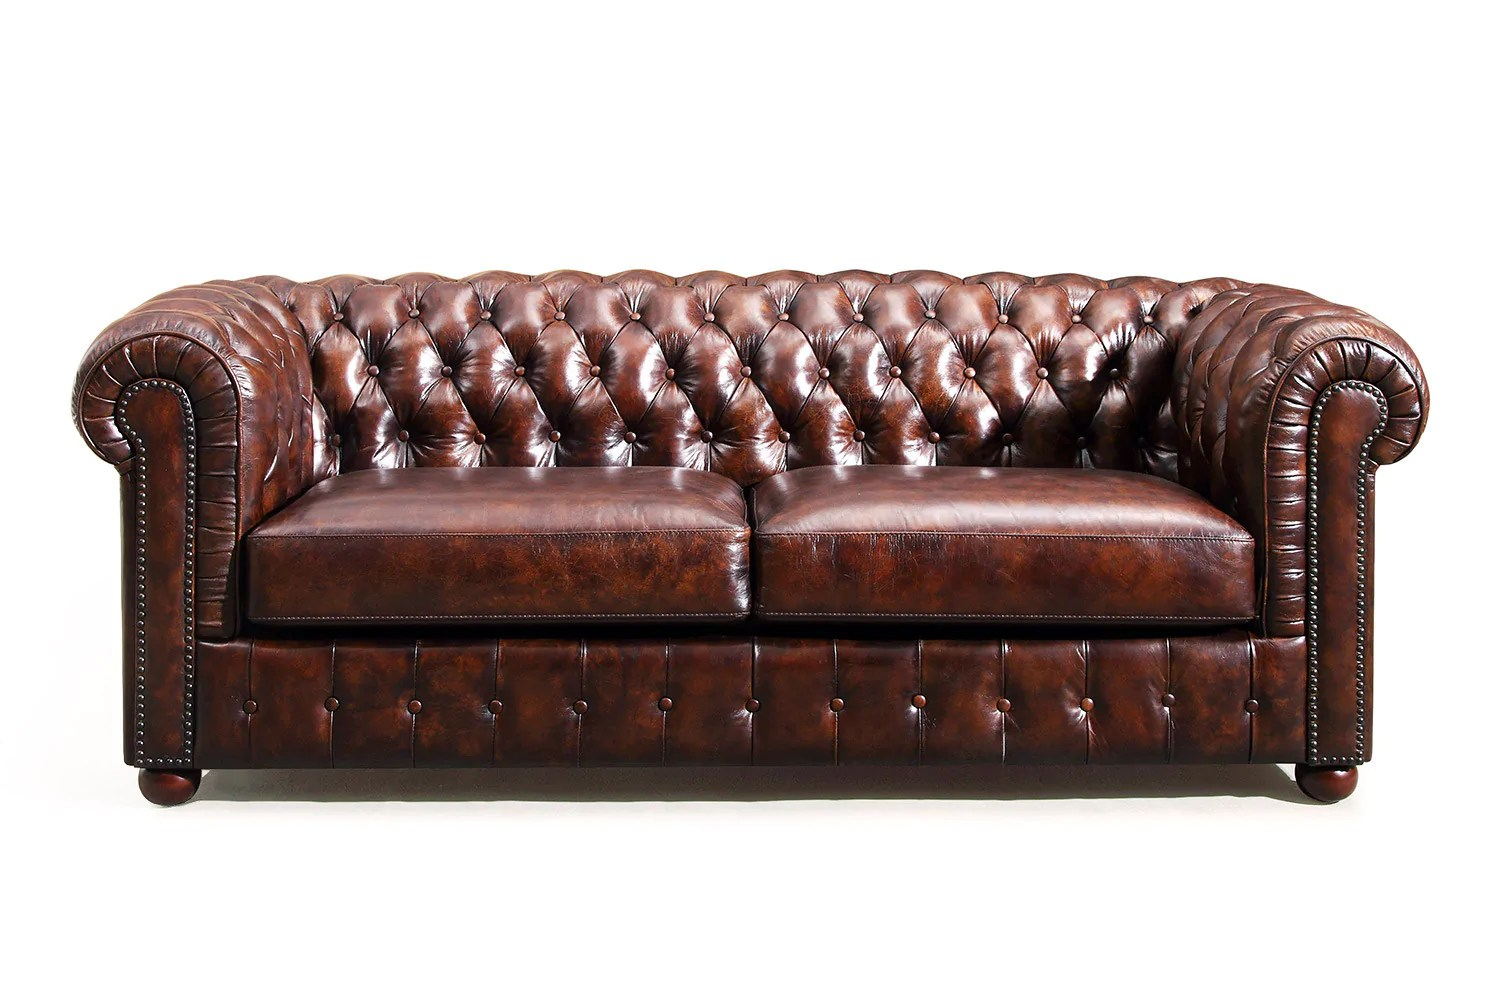 Sofa Couch Or Chesterfield The Original Chesterfield Sofa Rose And Moore